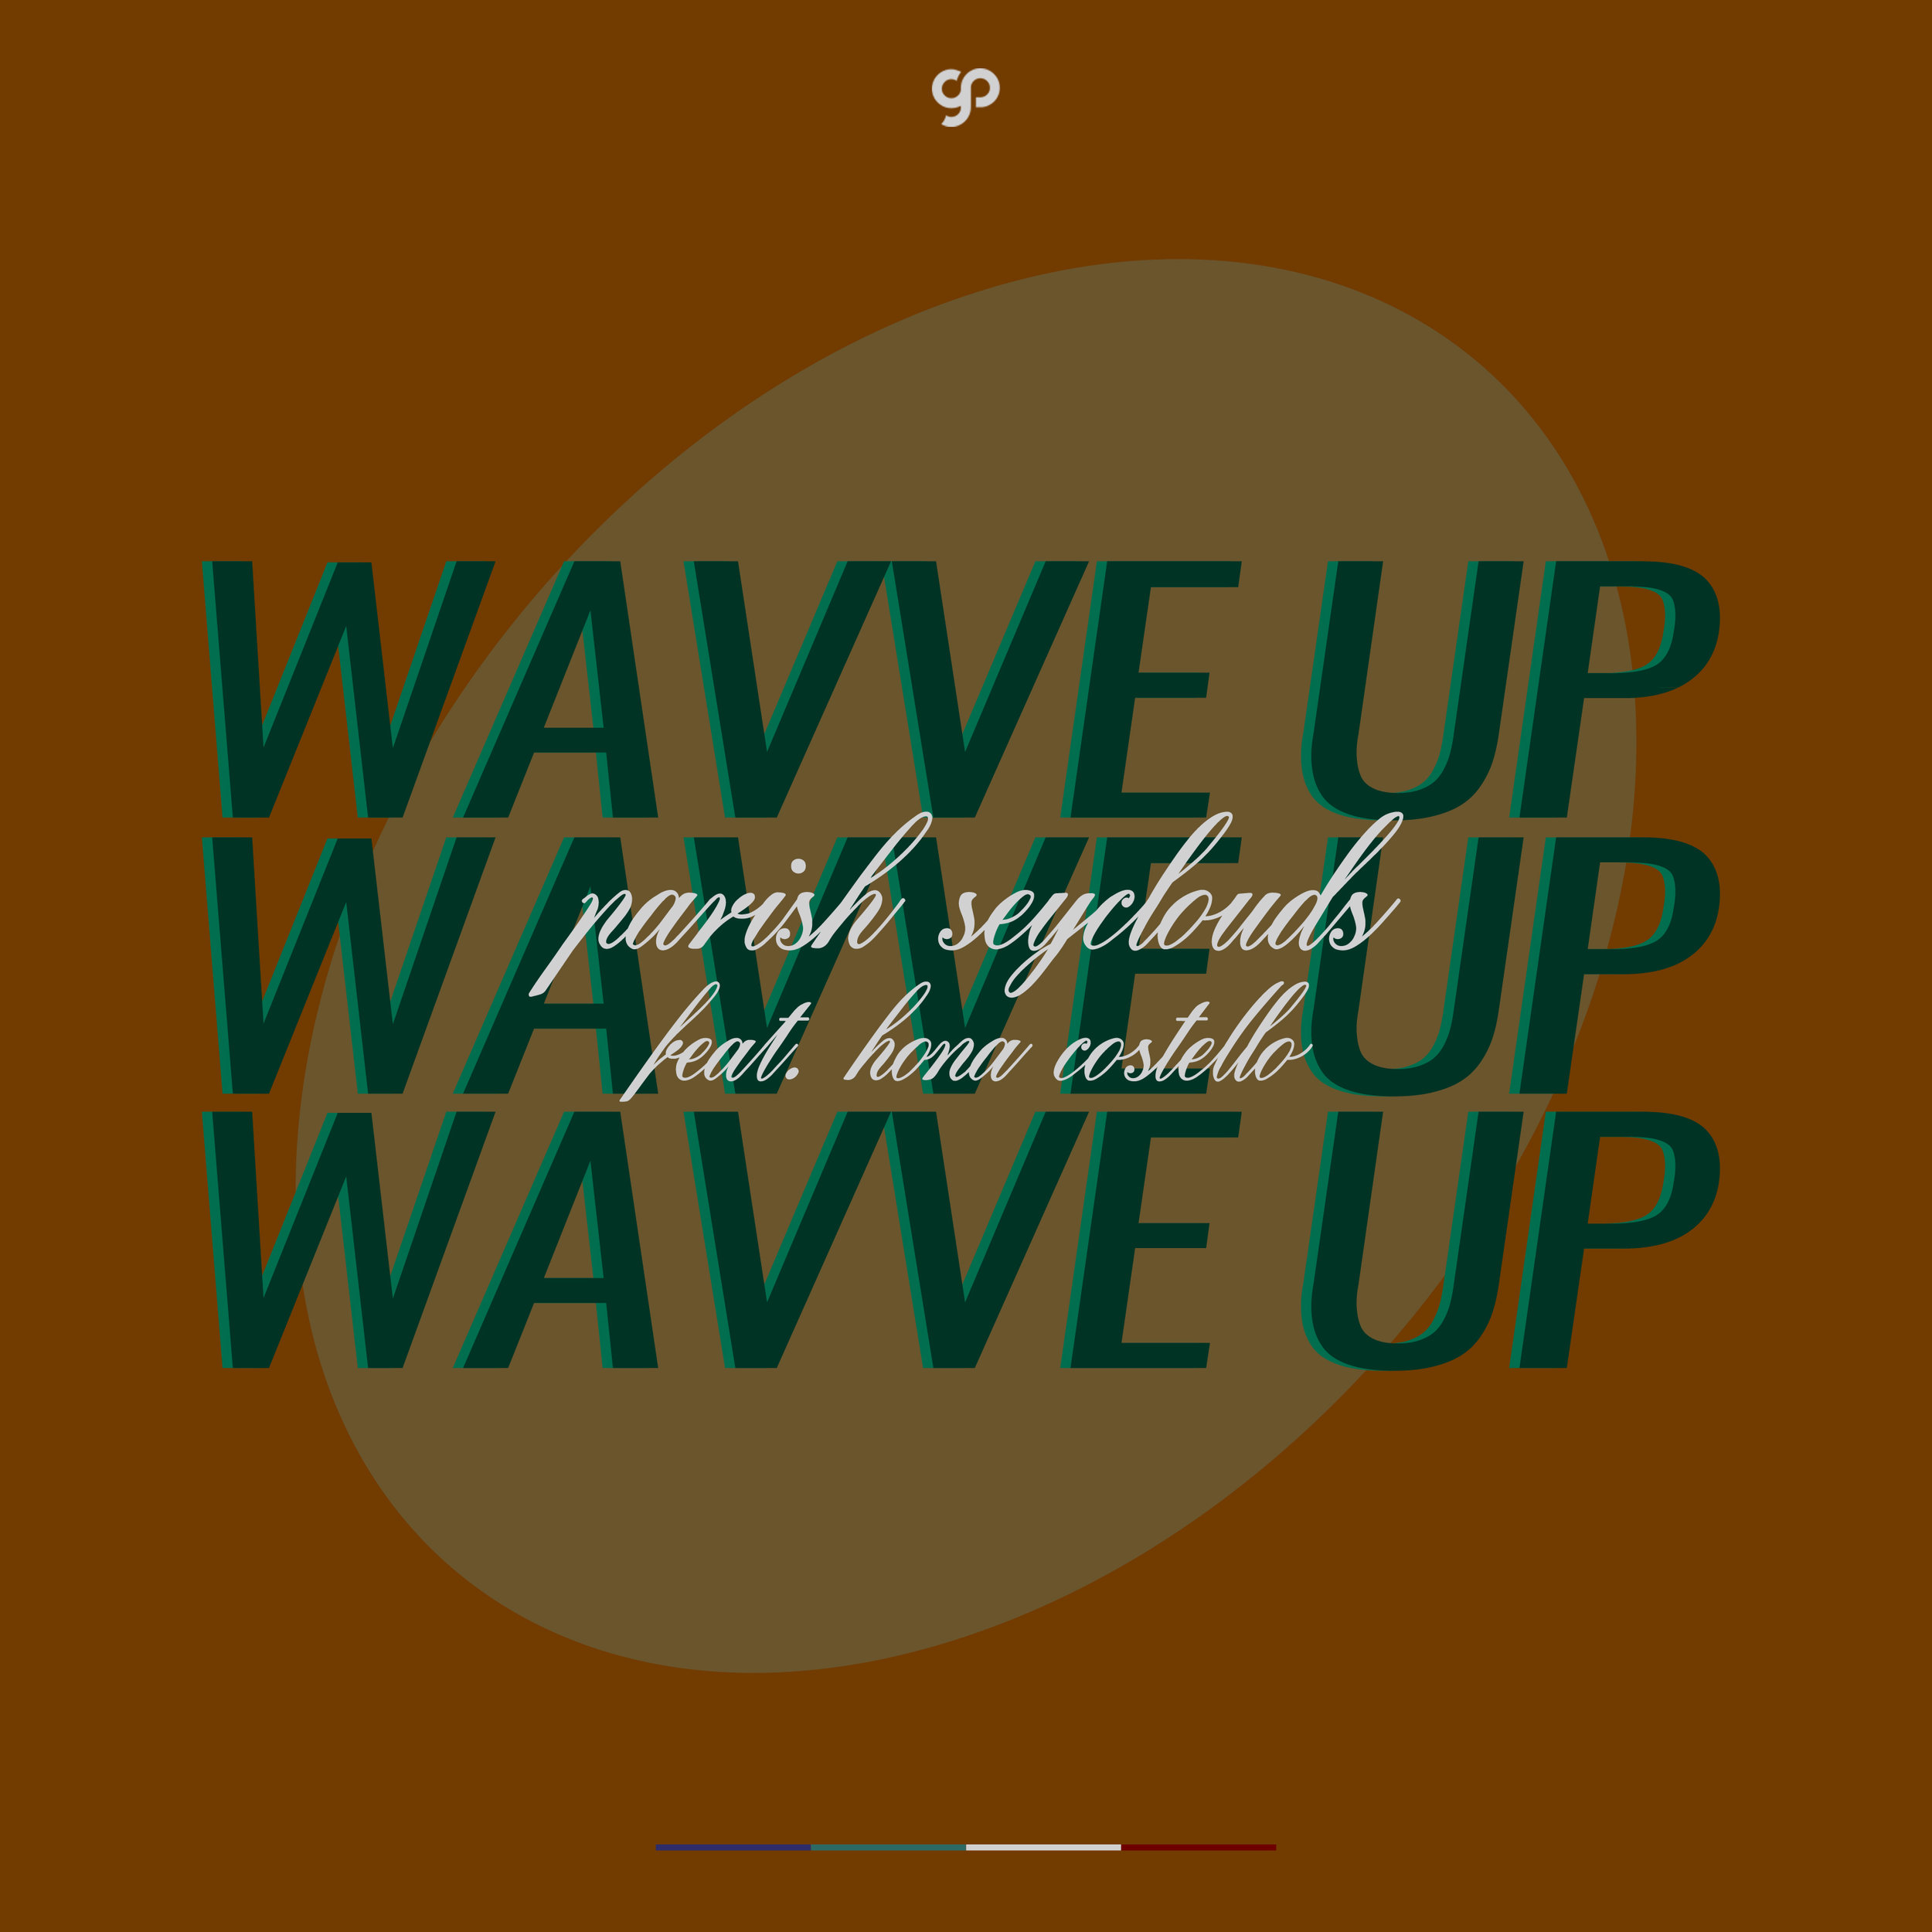 Parish seyclouds - Wavve Up (feat. Hona Costello).jpg